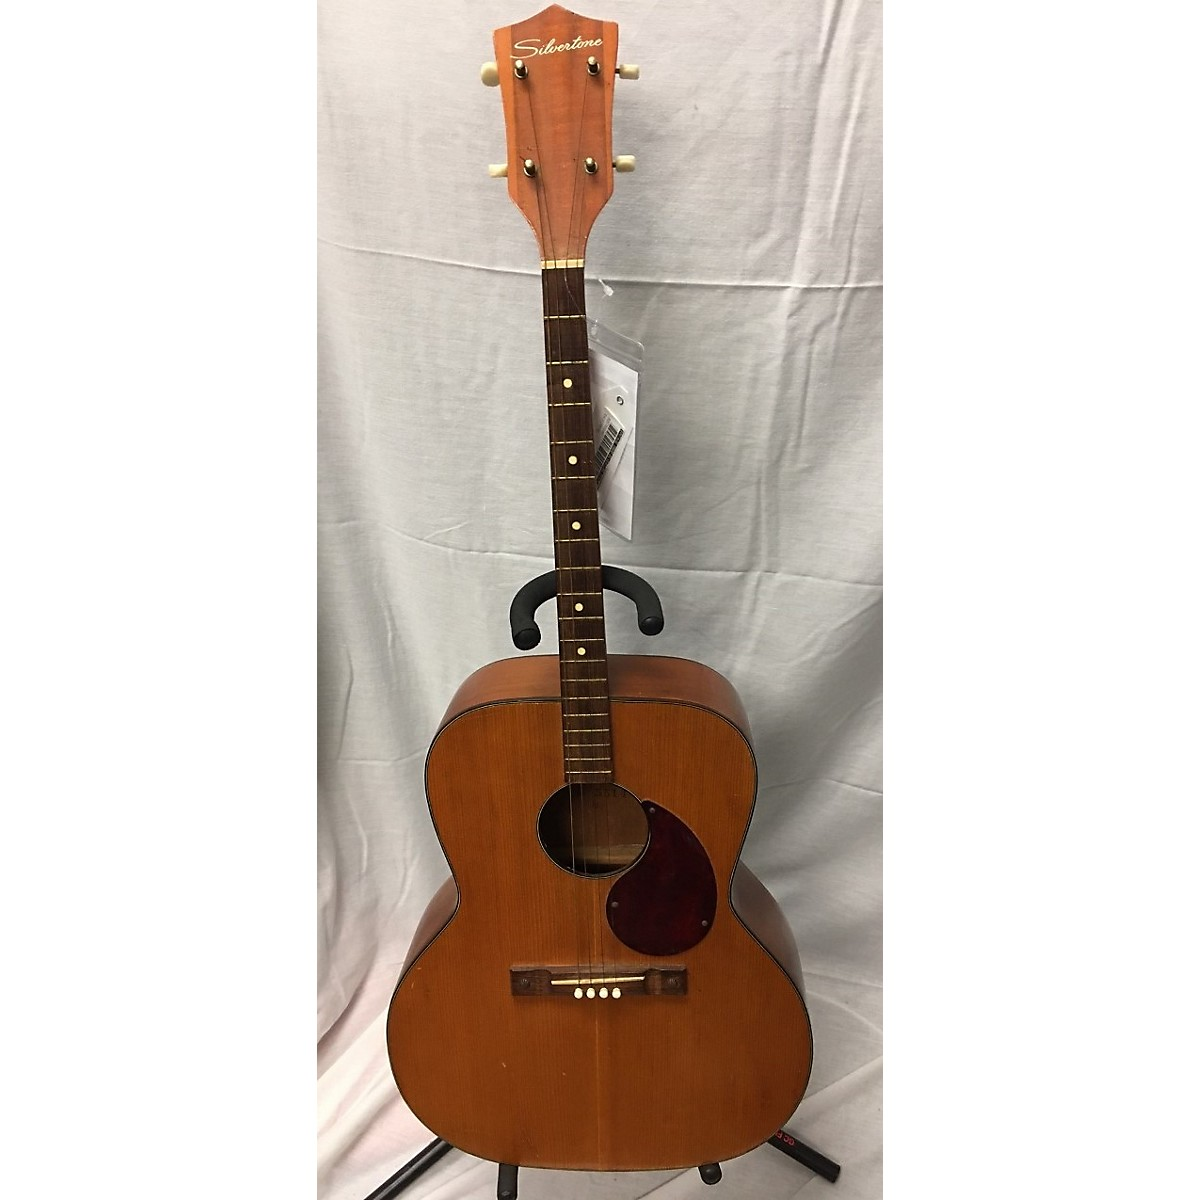 Silvertone 1960s Tenor Acoustic Guitar